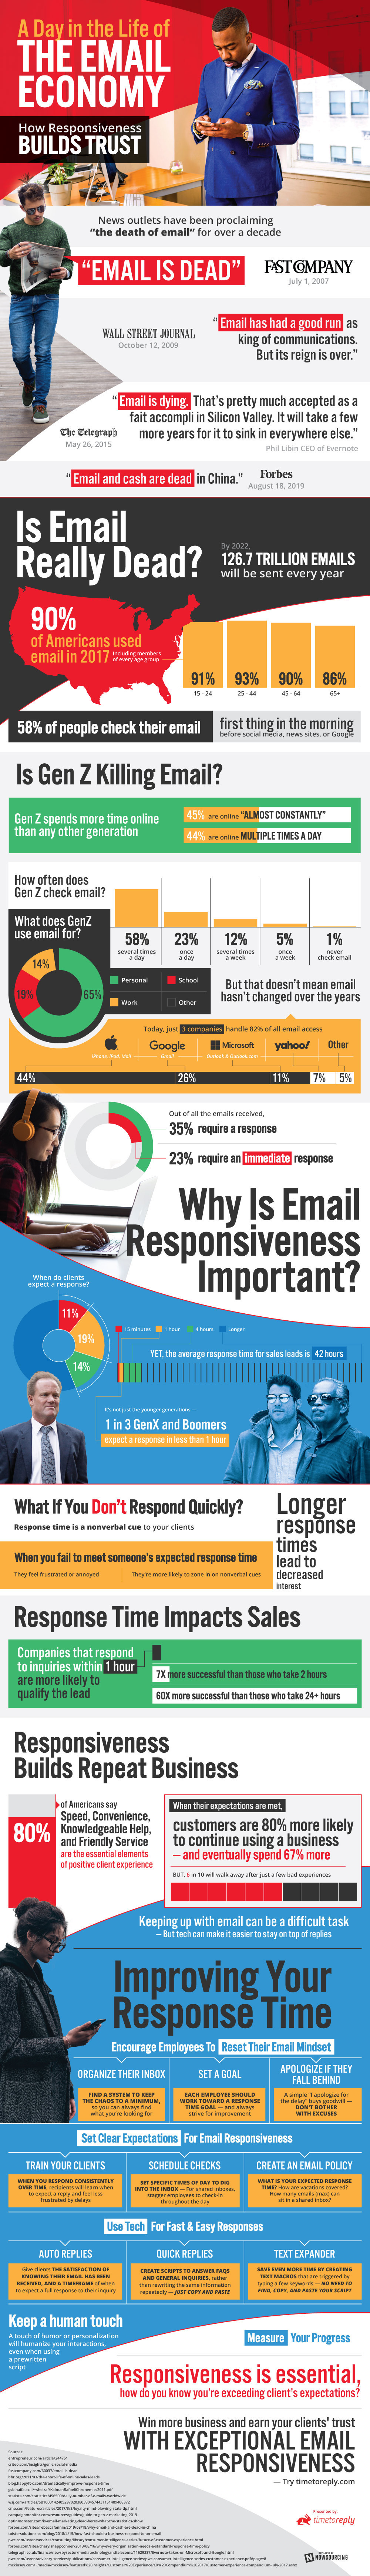 A Day in the Life of The Email Economy